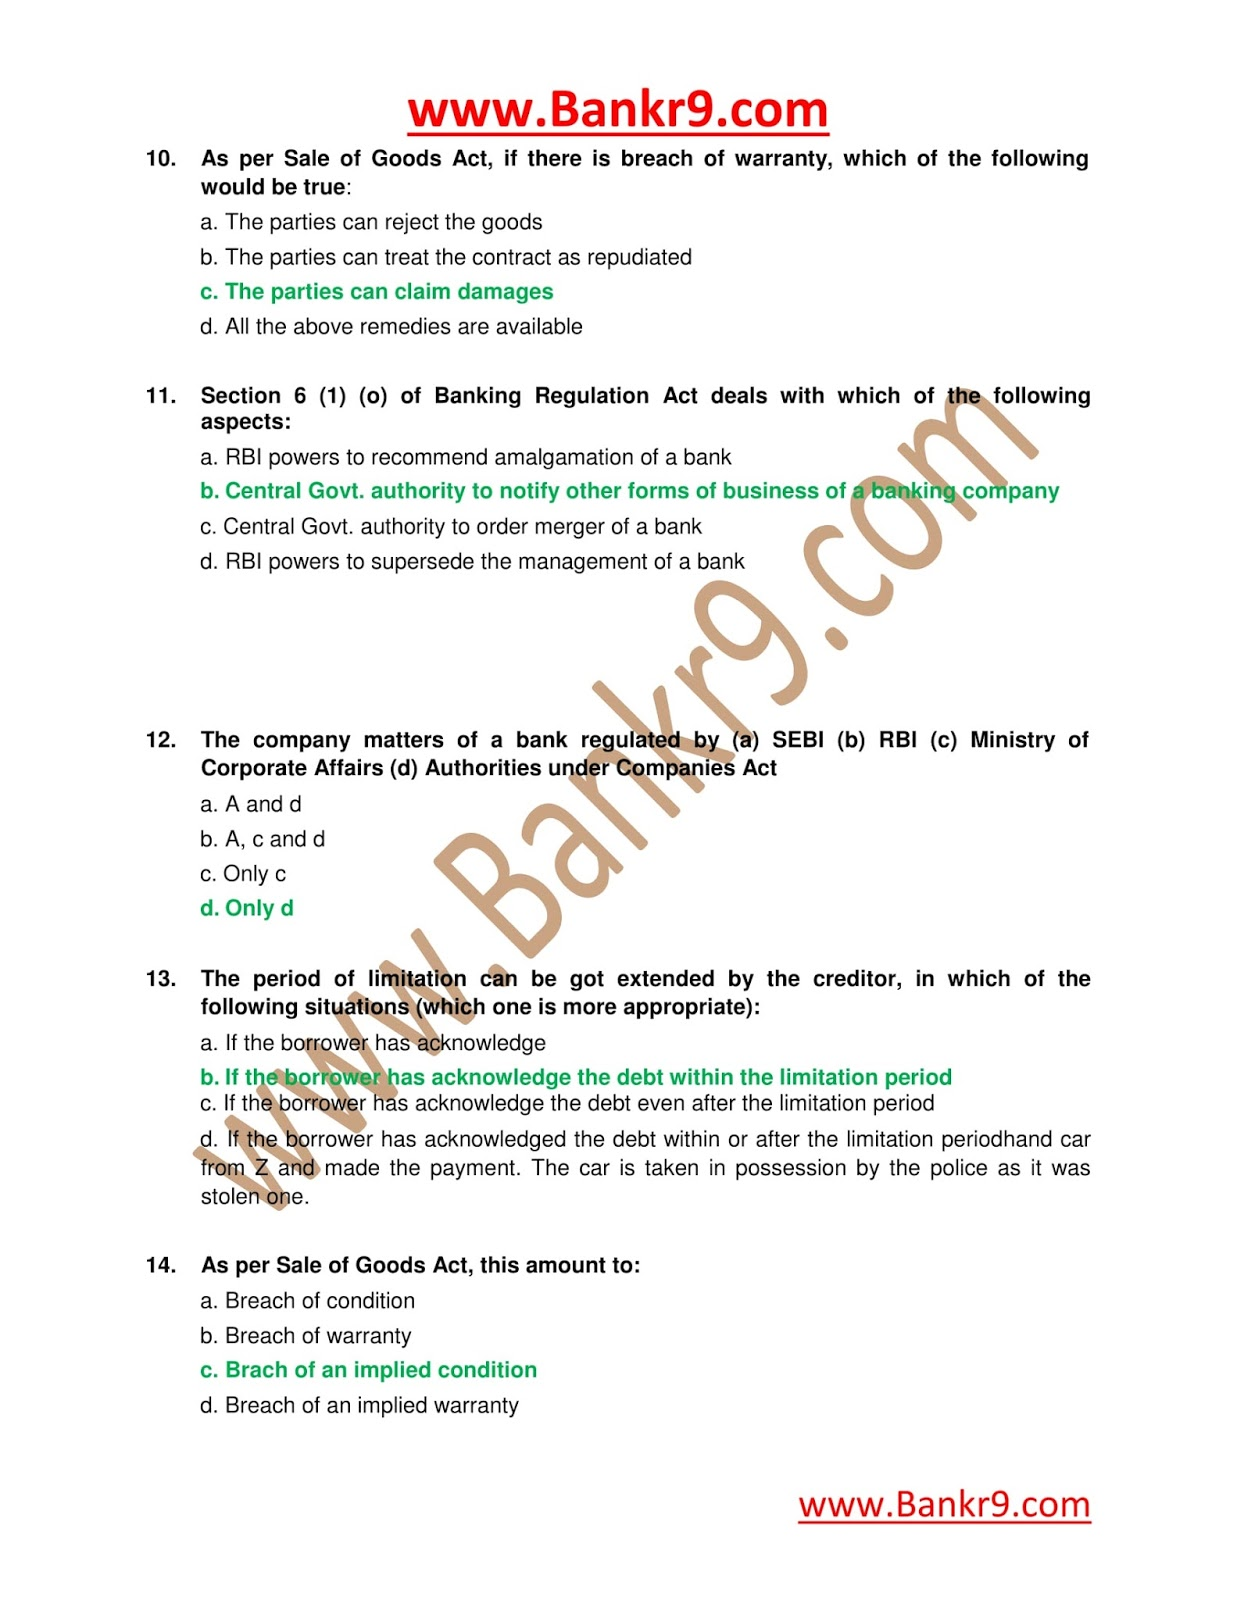 JAIIB 3rd Paper is Legal and Regulatory aspects of Banking Previouse Question Papers